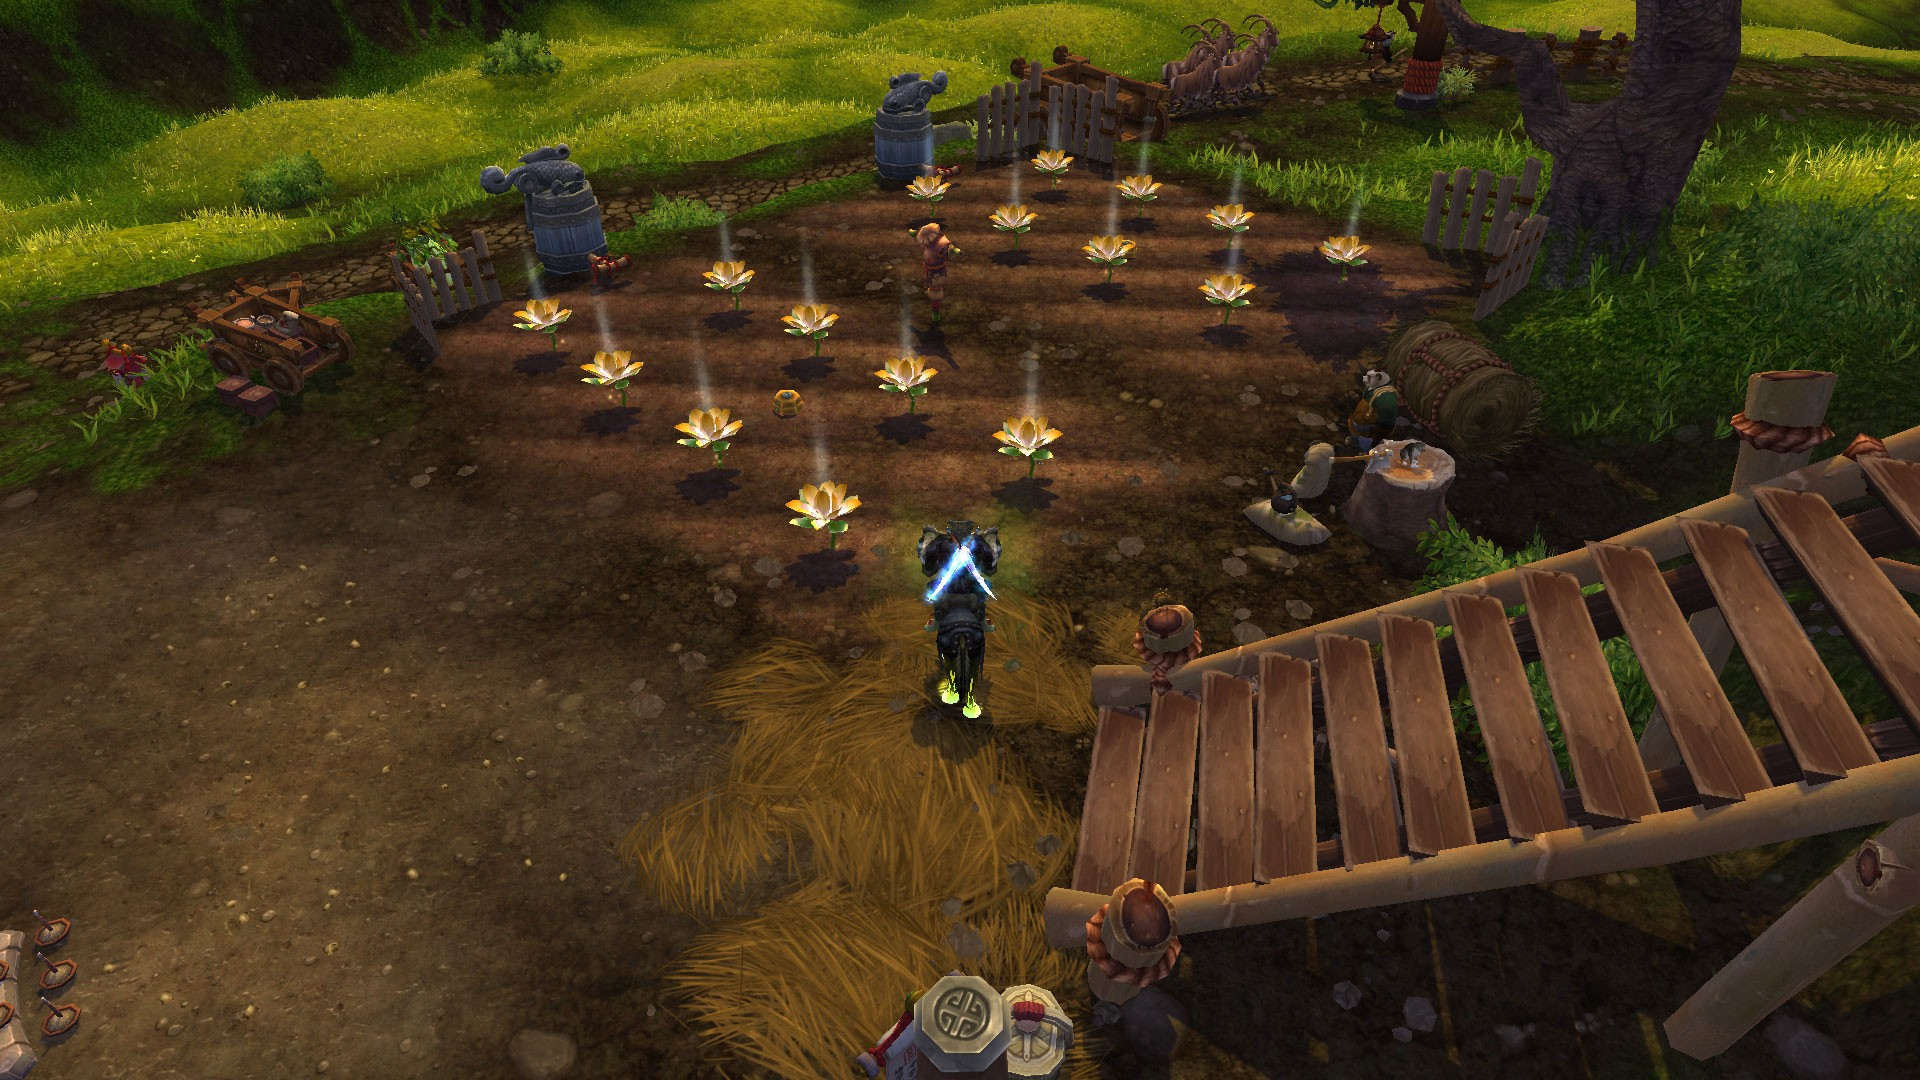 World of Warcraft - Tiller farm Golden lotus's